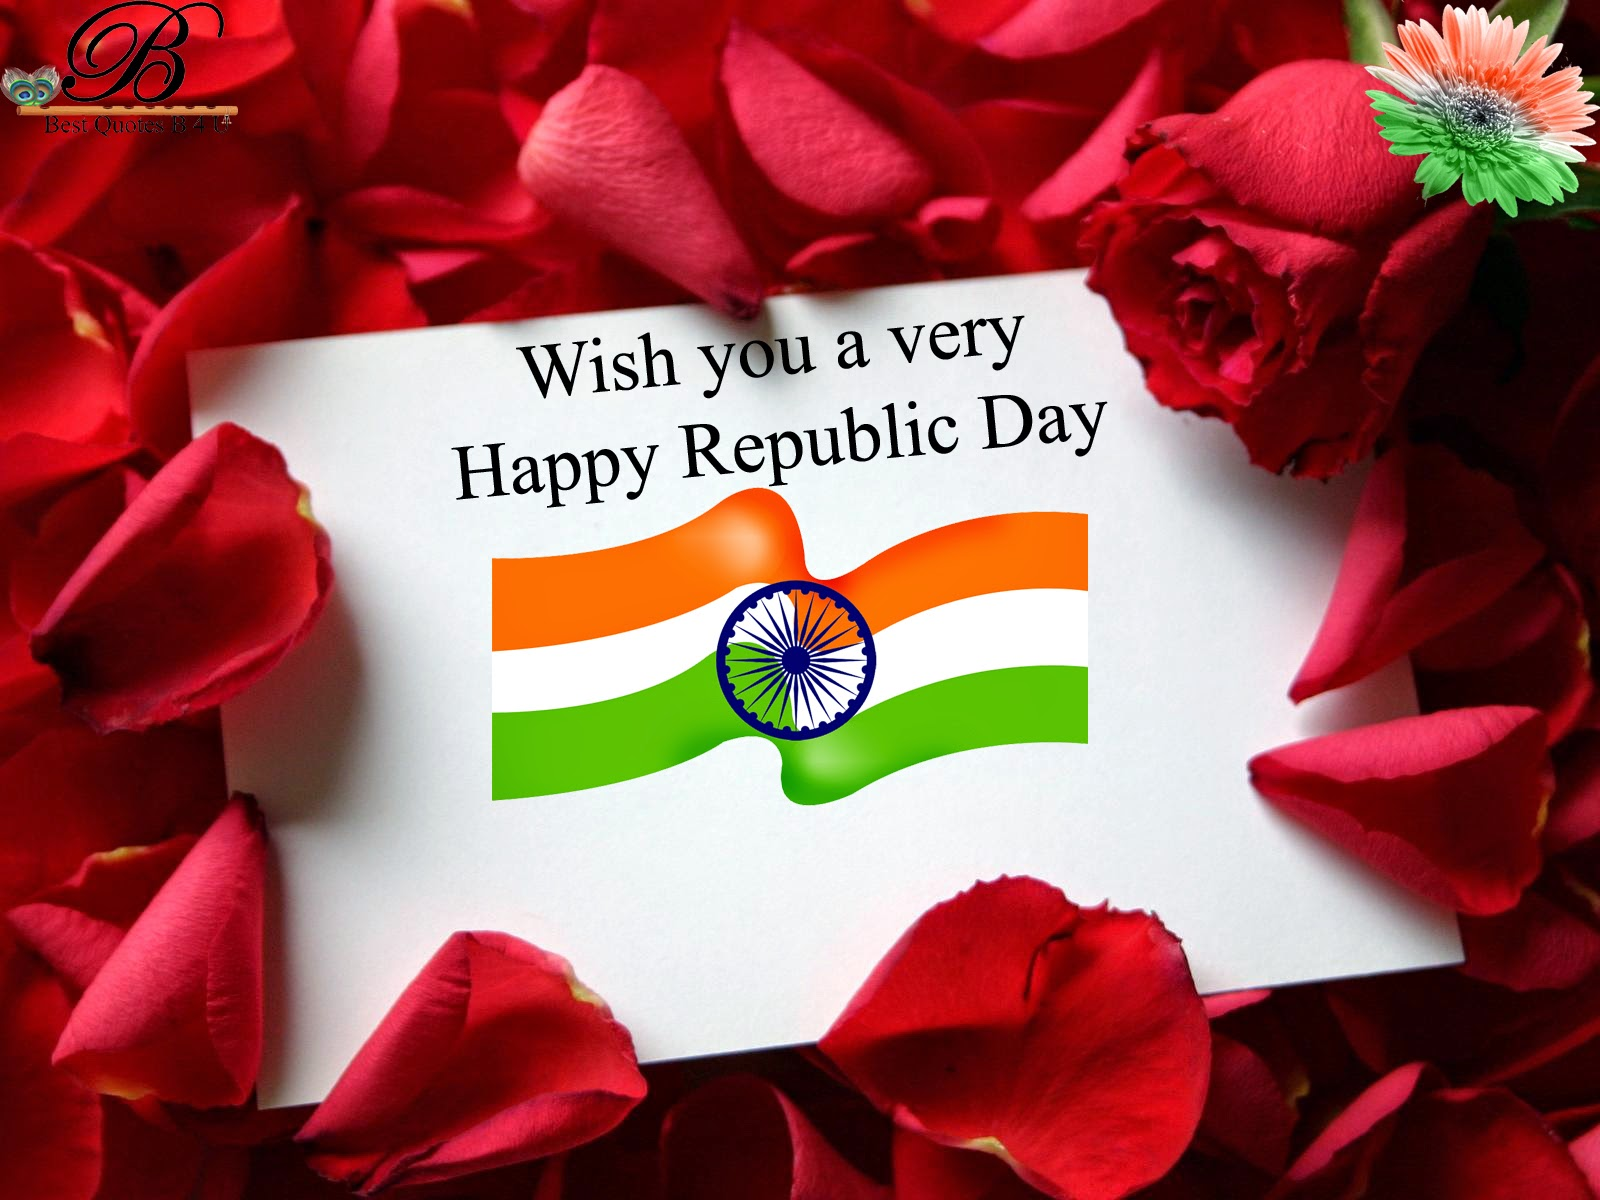 RepublicDay Quotes RepublicDay wishes RepublicDay HDwallpapers RepublicDaywishes